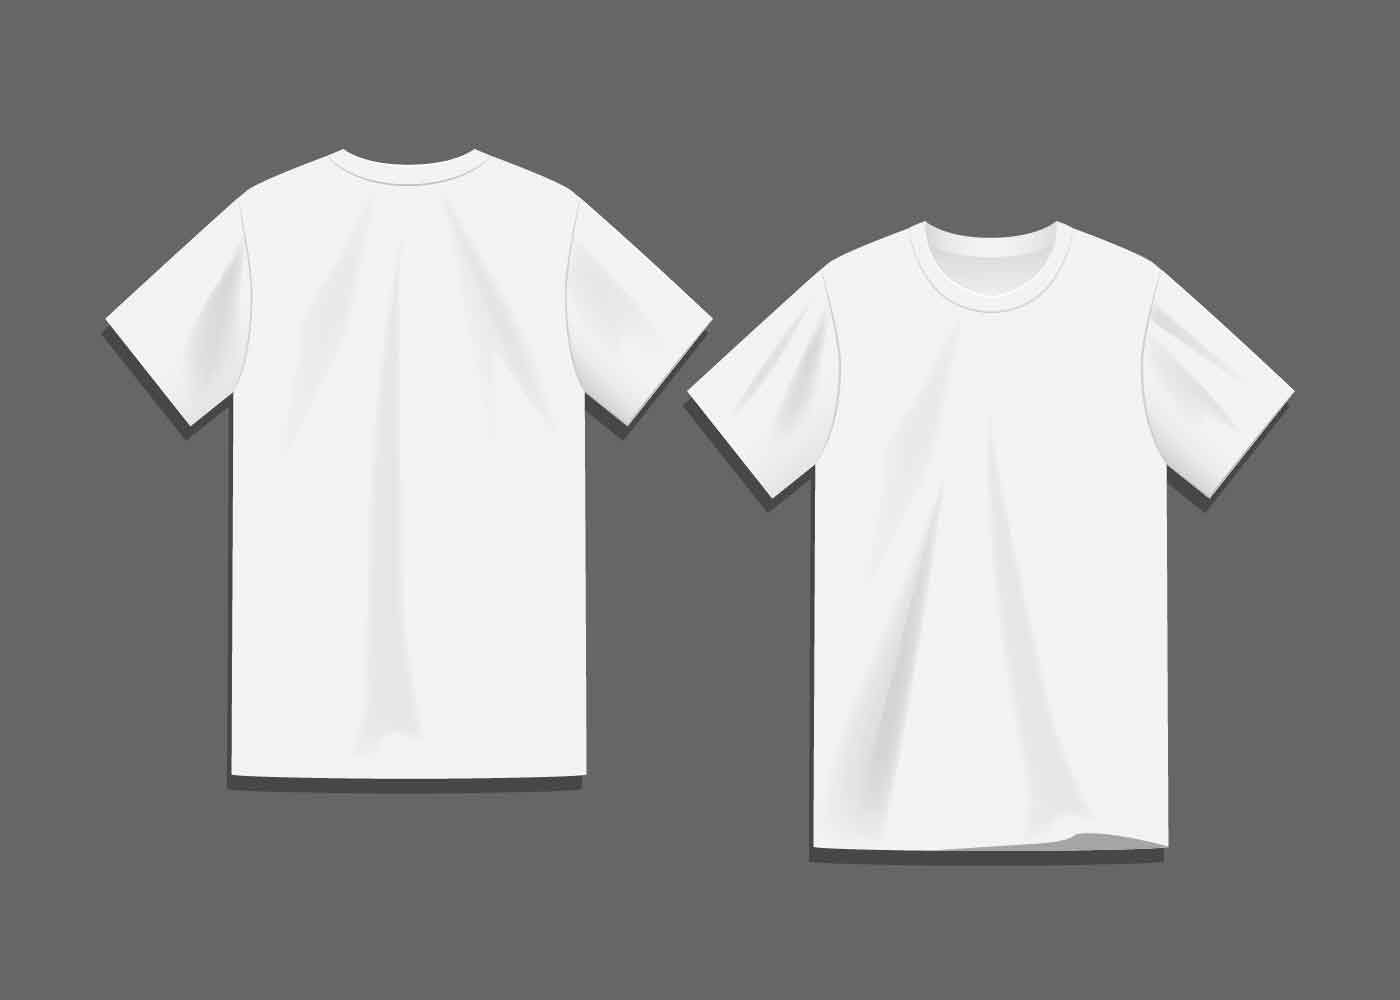 010 Stupendou T Shirt Template Vector High Resolution  Illustrator Design Free Download AiFull